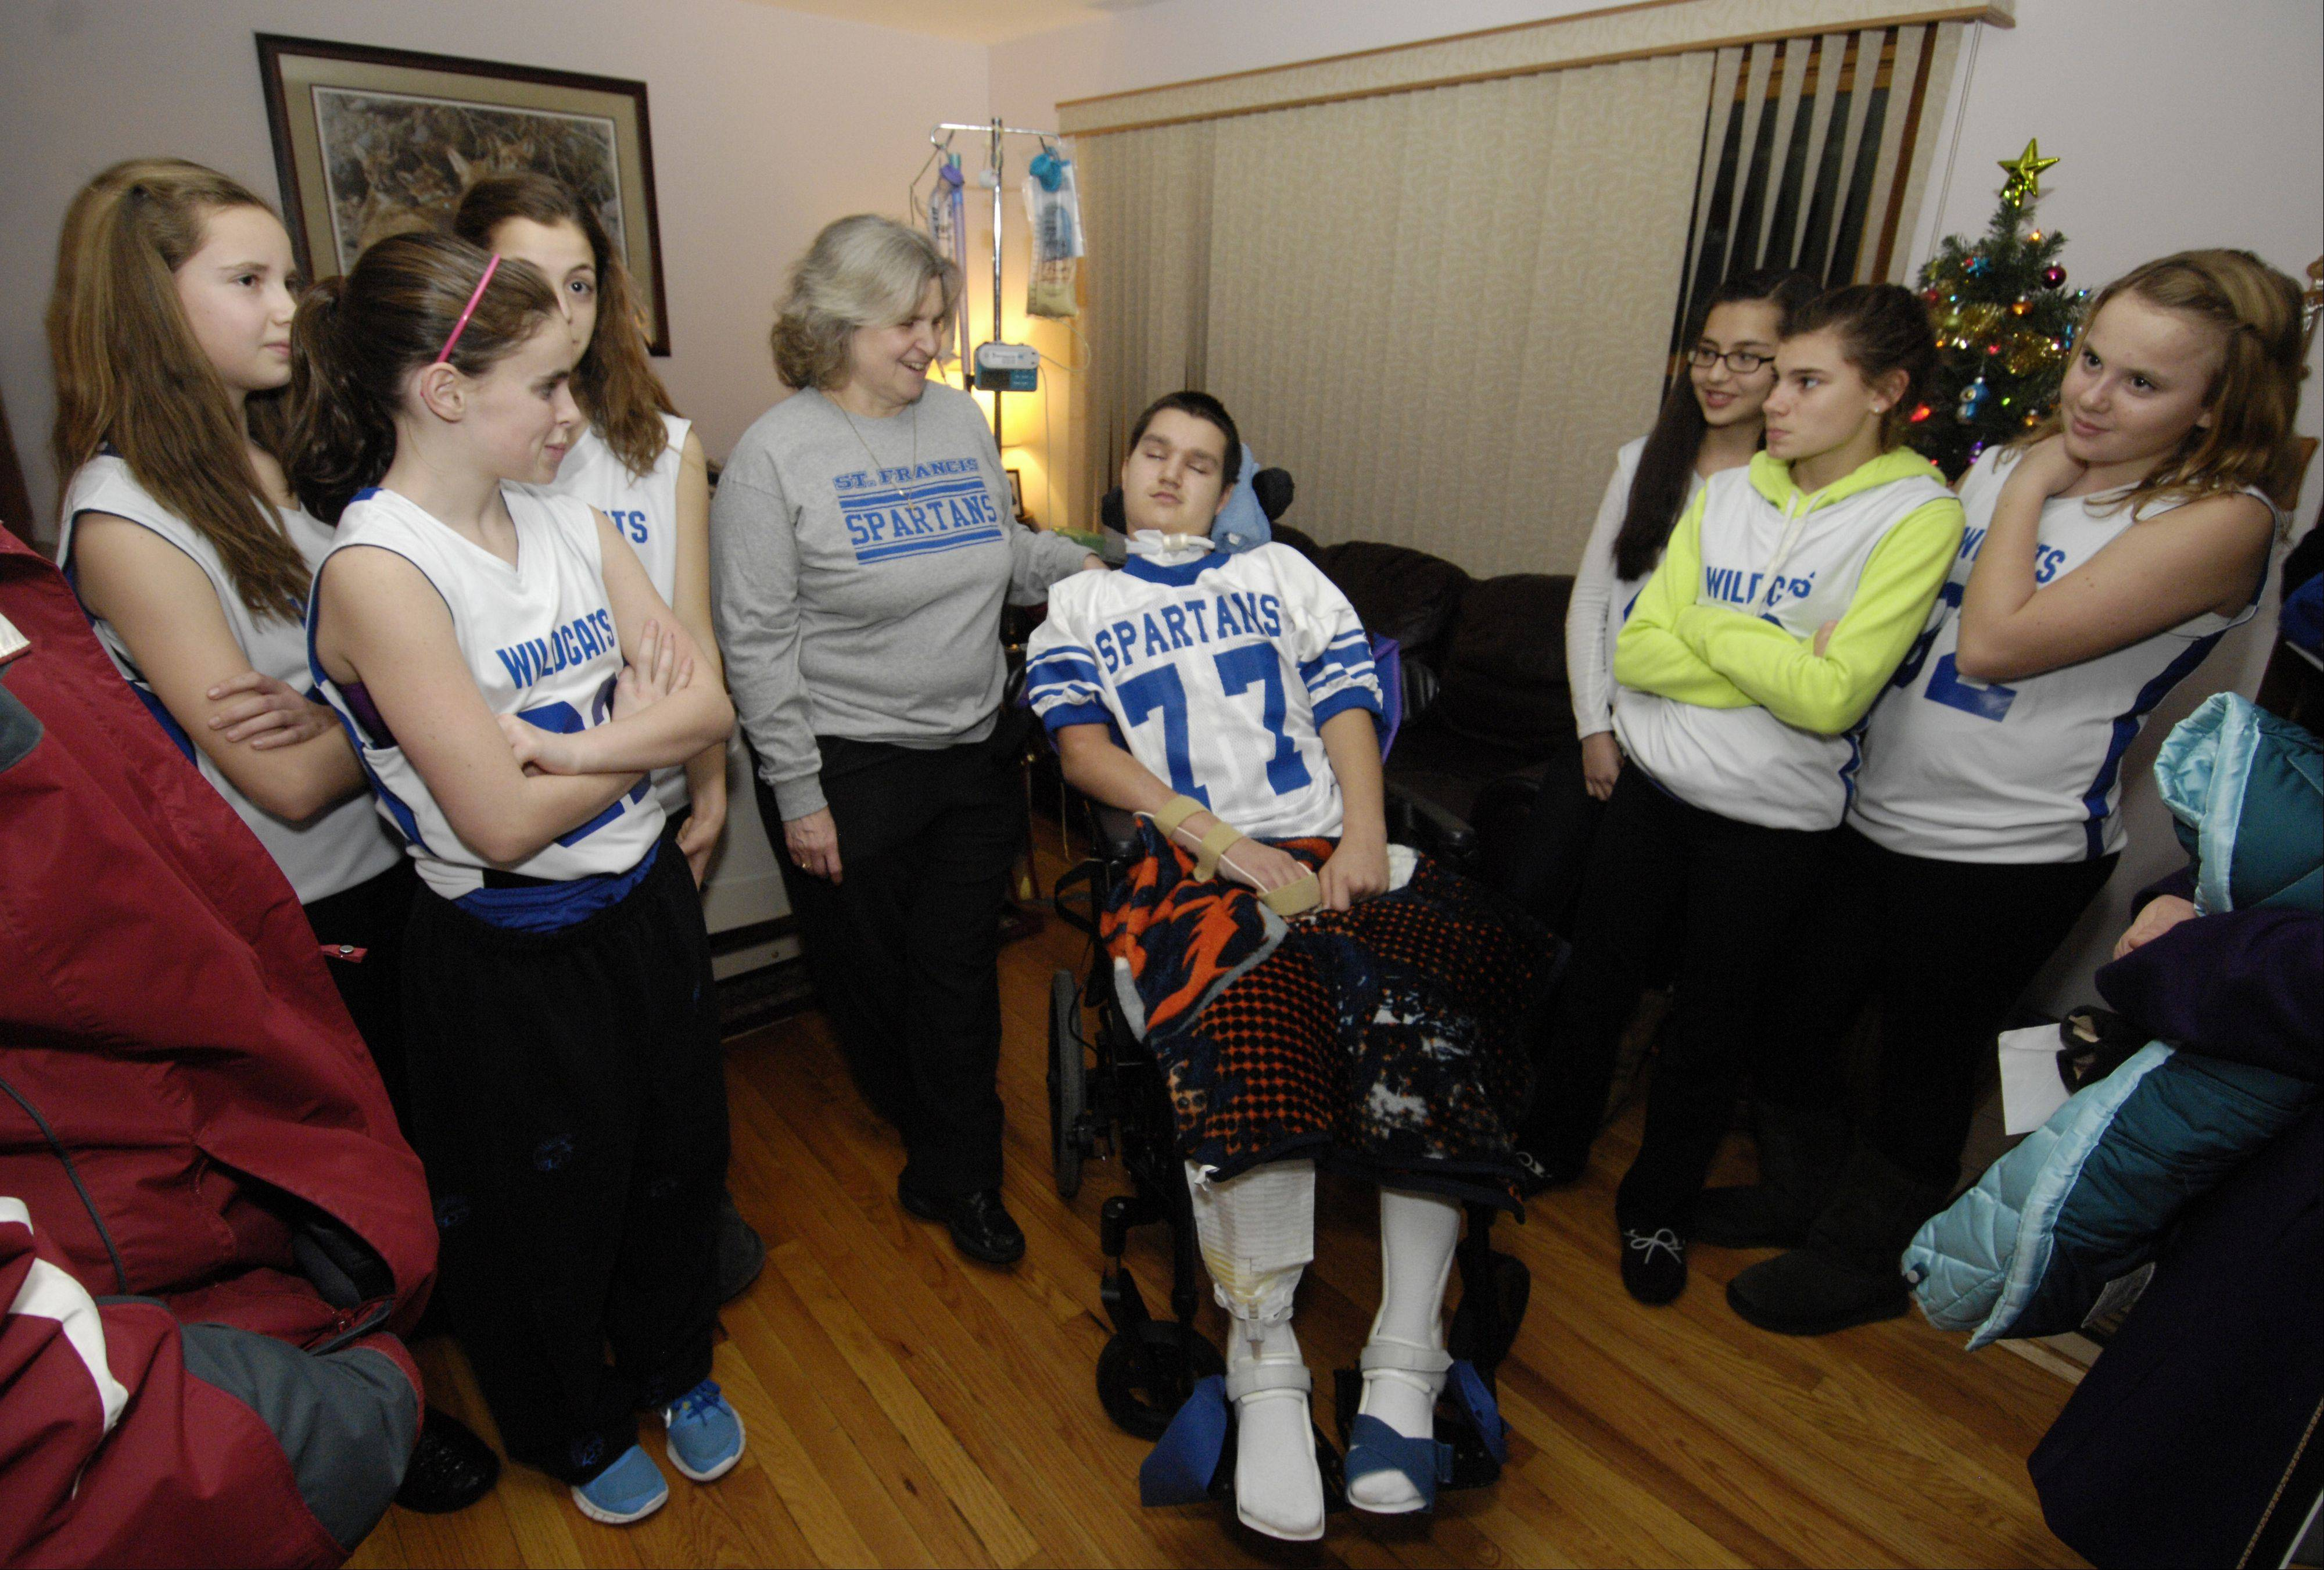 Alex Novak, 15, of West Chicago, receives a donation from members of the St. John the Baptist School girls basketball team.